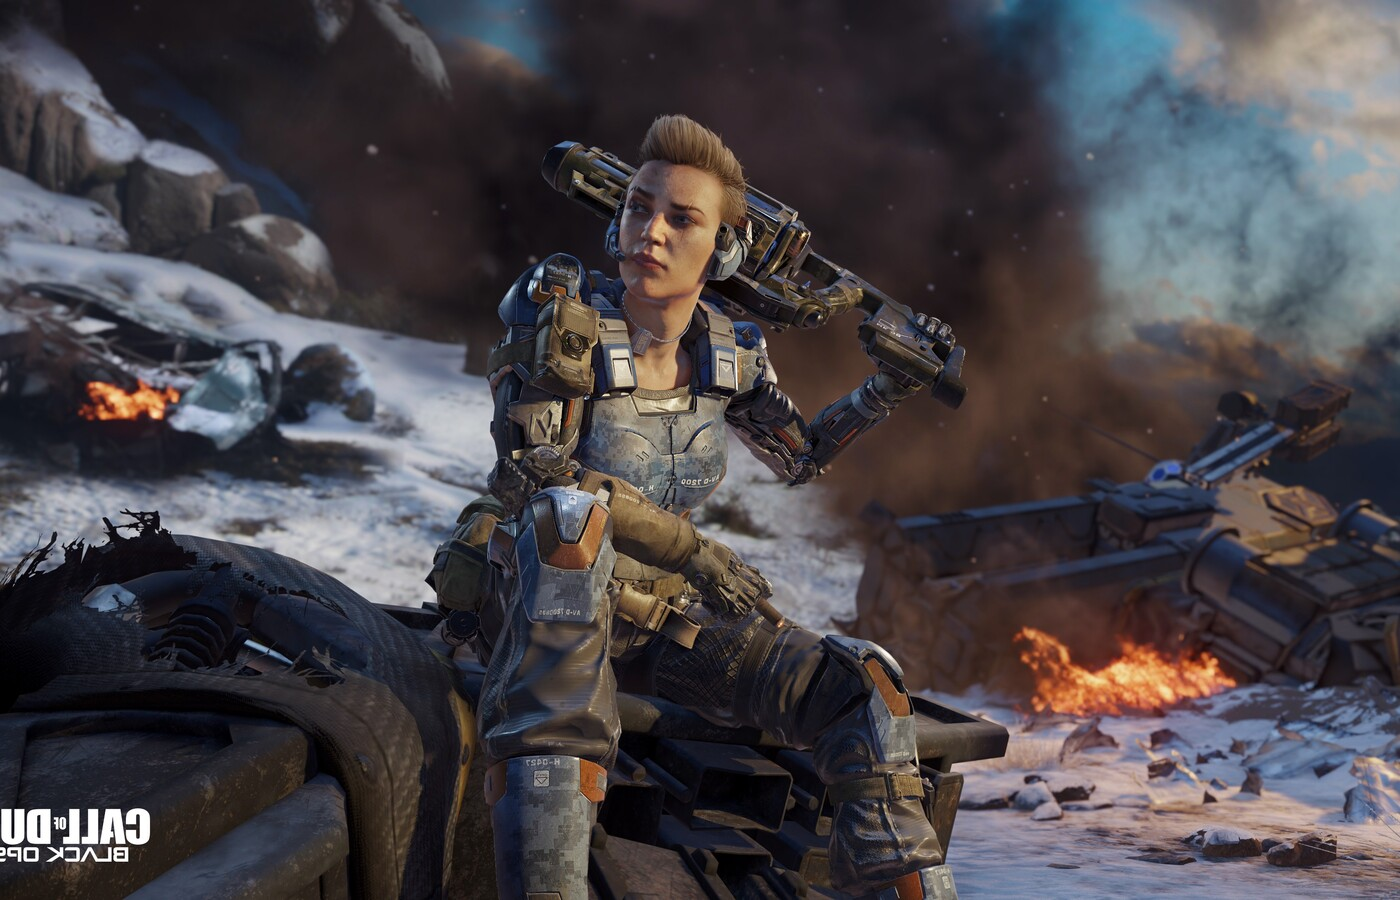 1400x900 Call Of Duty Black Ops 3 Game 1400x900 Resolution Hd 4k